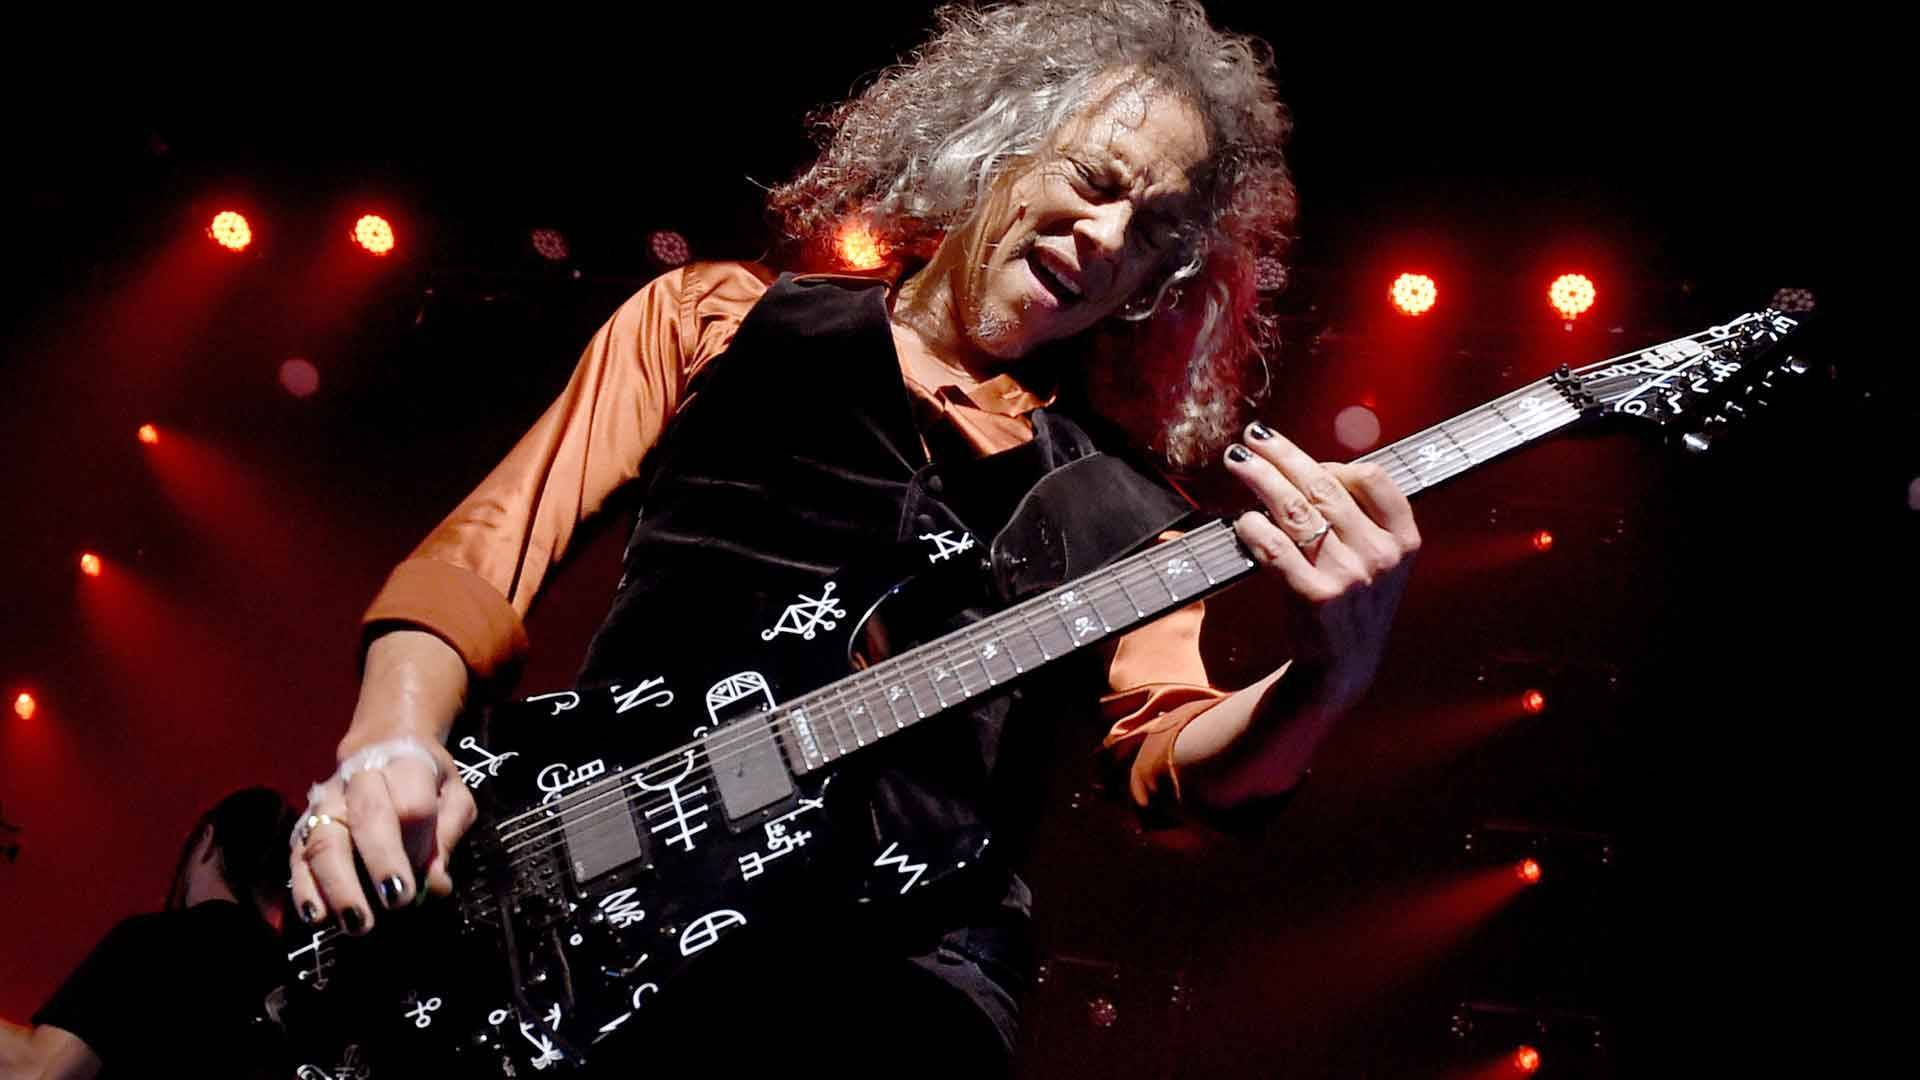 Kirk Hammett of Metallica performs at the Fonda Theatre on December 15, 2016. Kevin Winter/Getty Images)